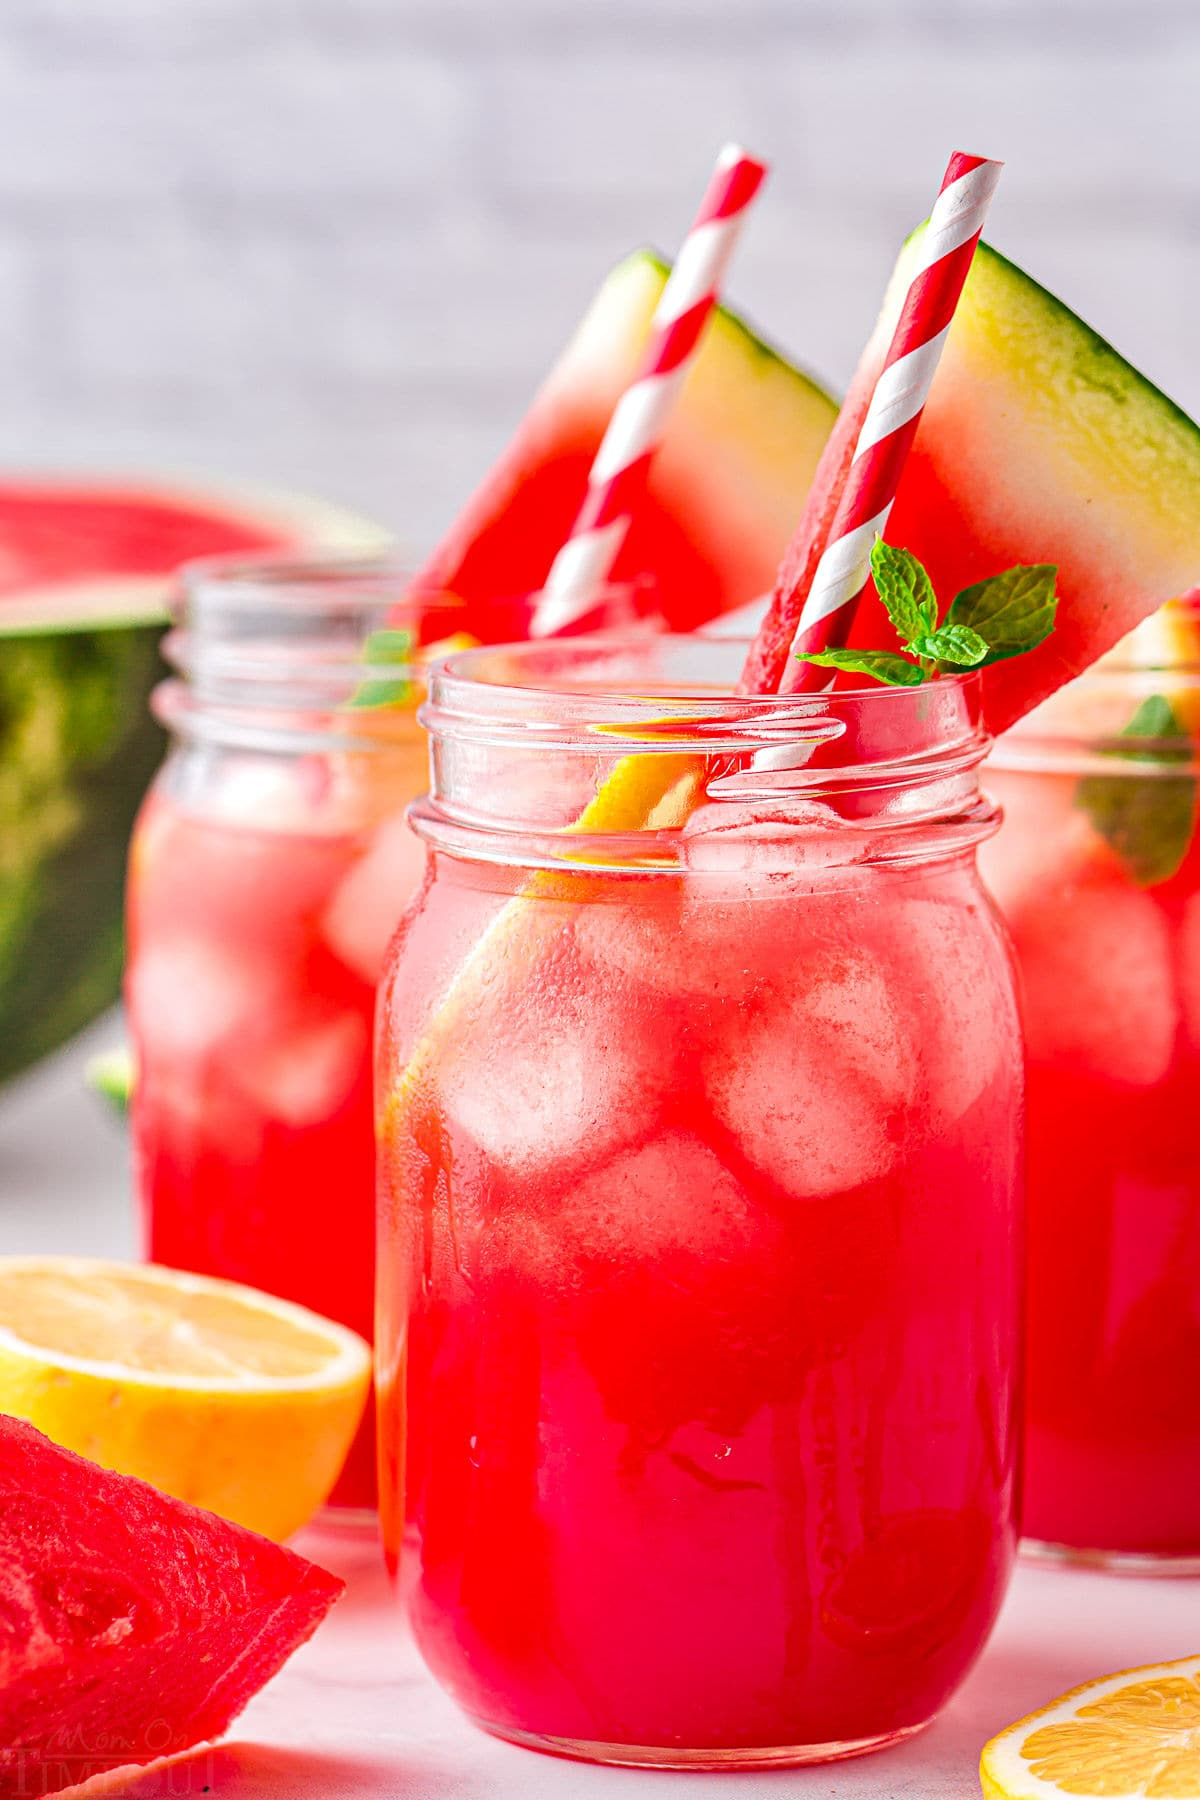 watermelon lemonade serve with striped straws and watermelon slices.